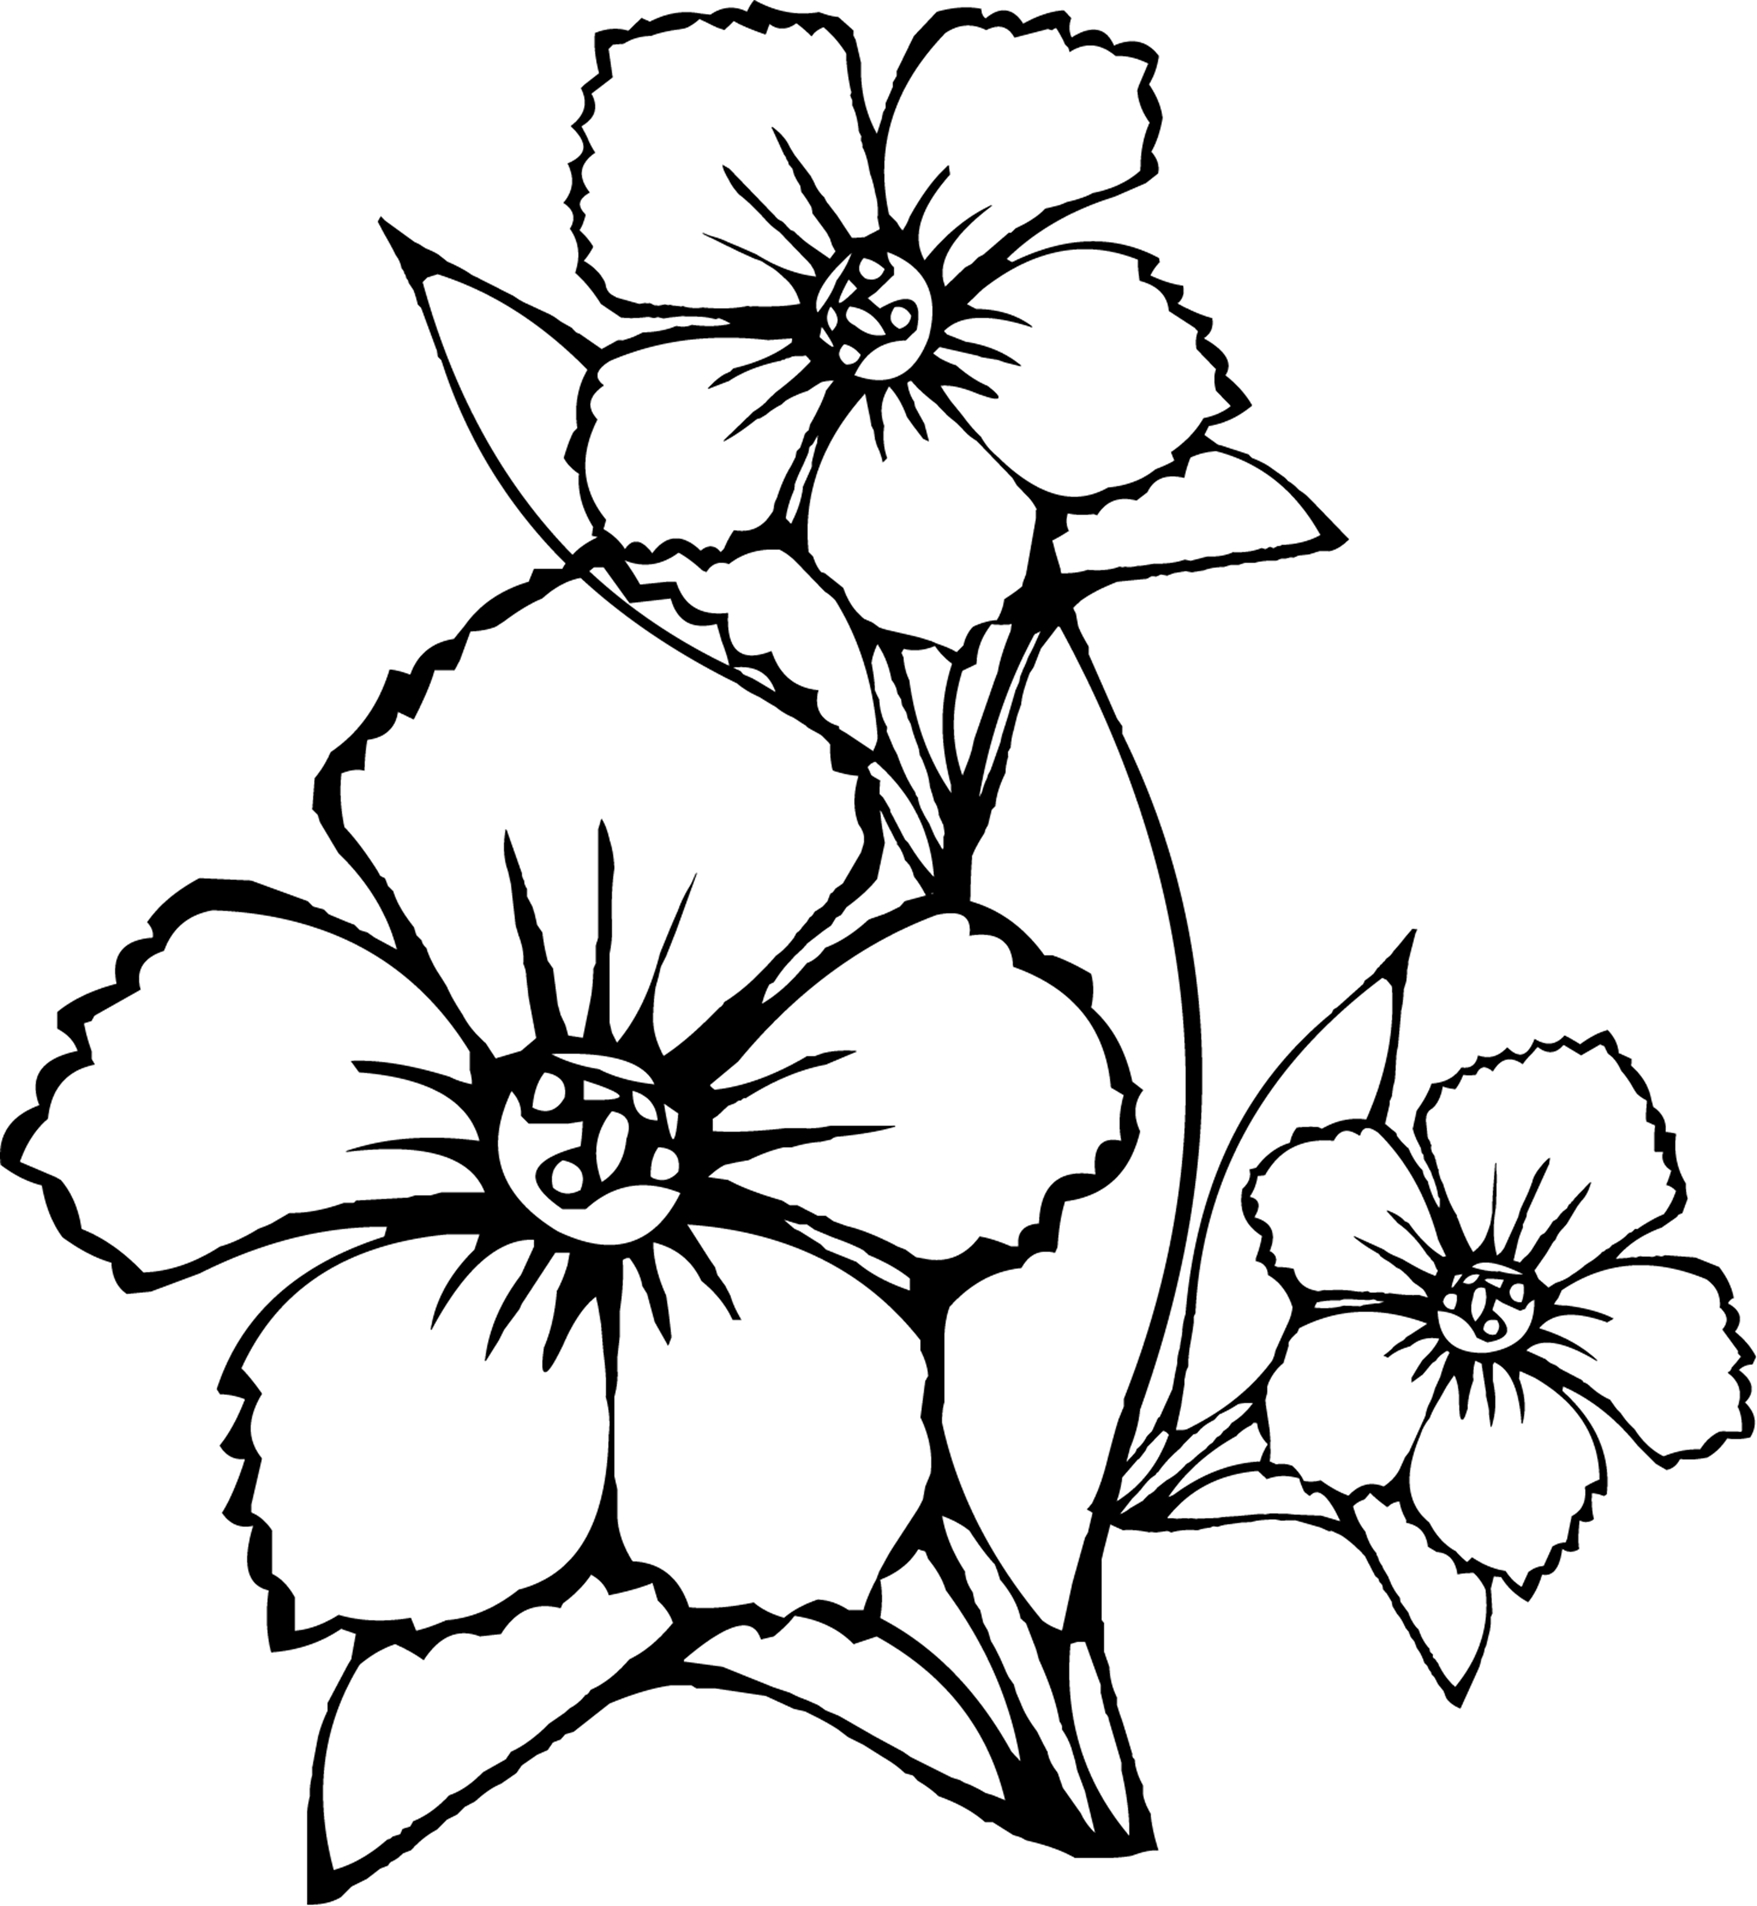 printable flowers to color free printable flower coloring pages for kids best printable flowers to color 1 2